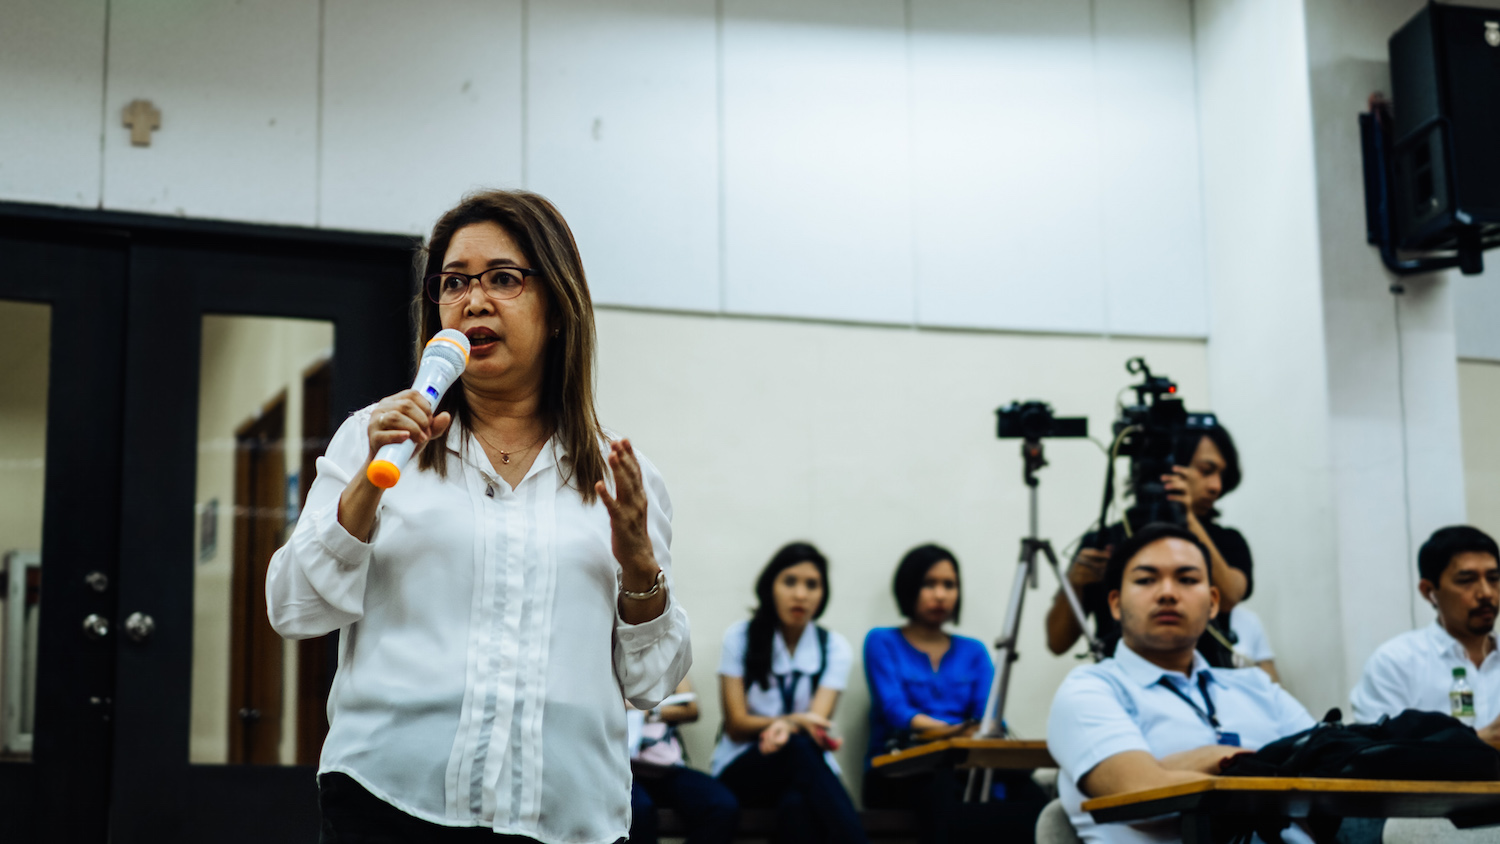 TheLeaderIWant: Youth dared to find 'hugot' in social issues